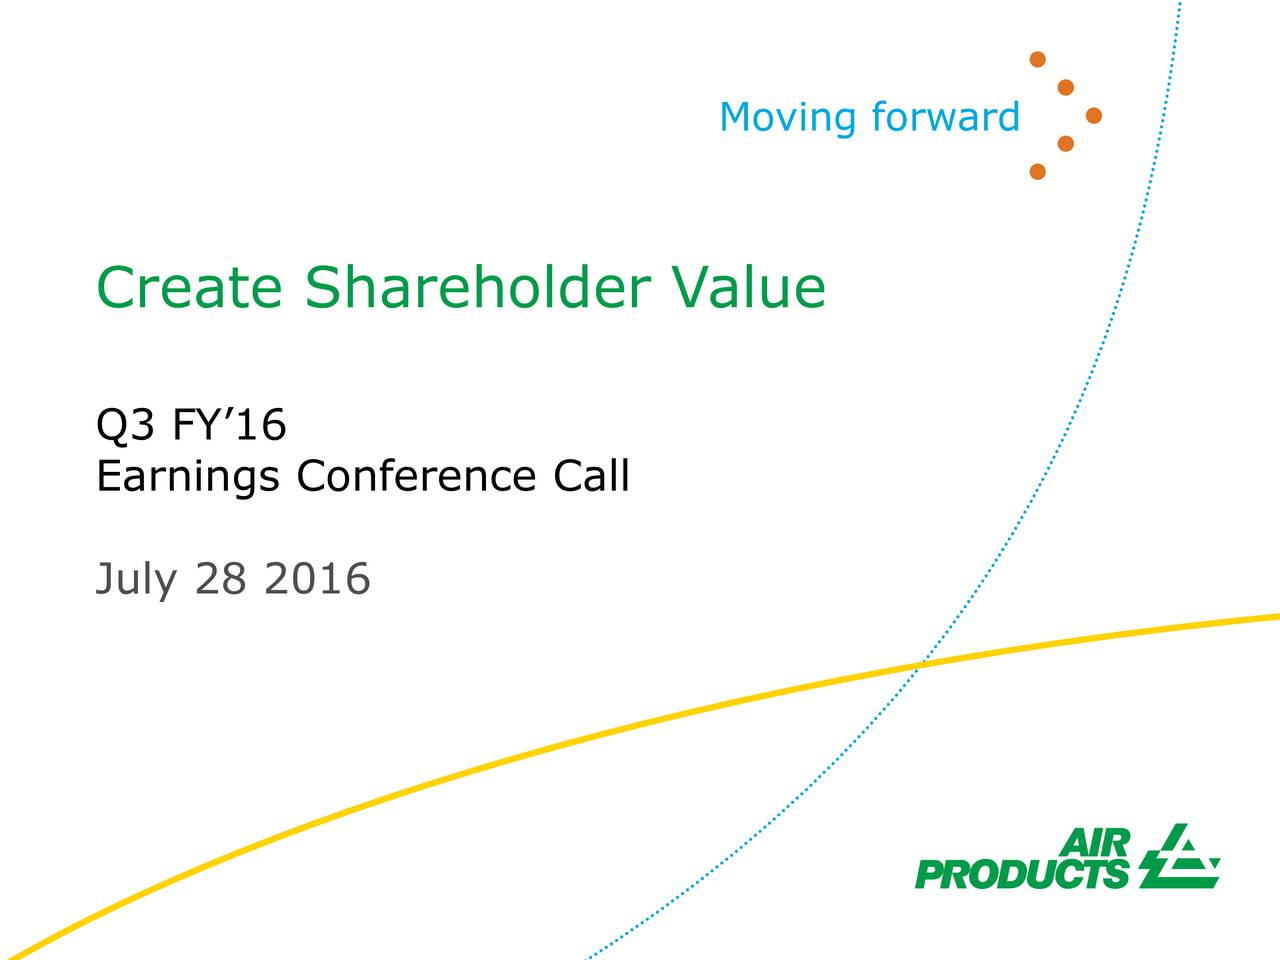 Create Shareholder Value Q3 FY16 Earnings Conference Call July 28 2016